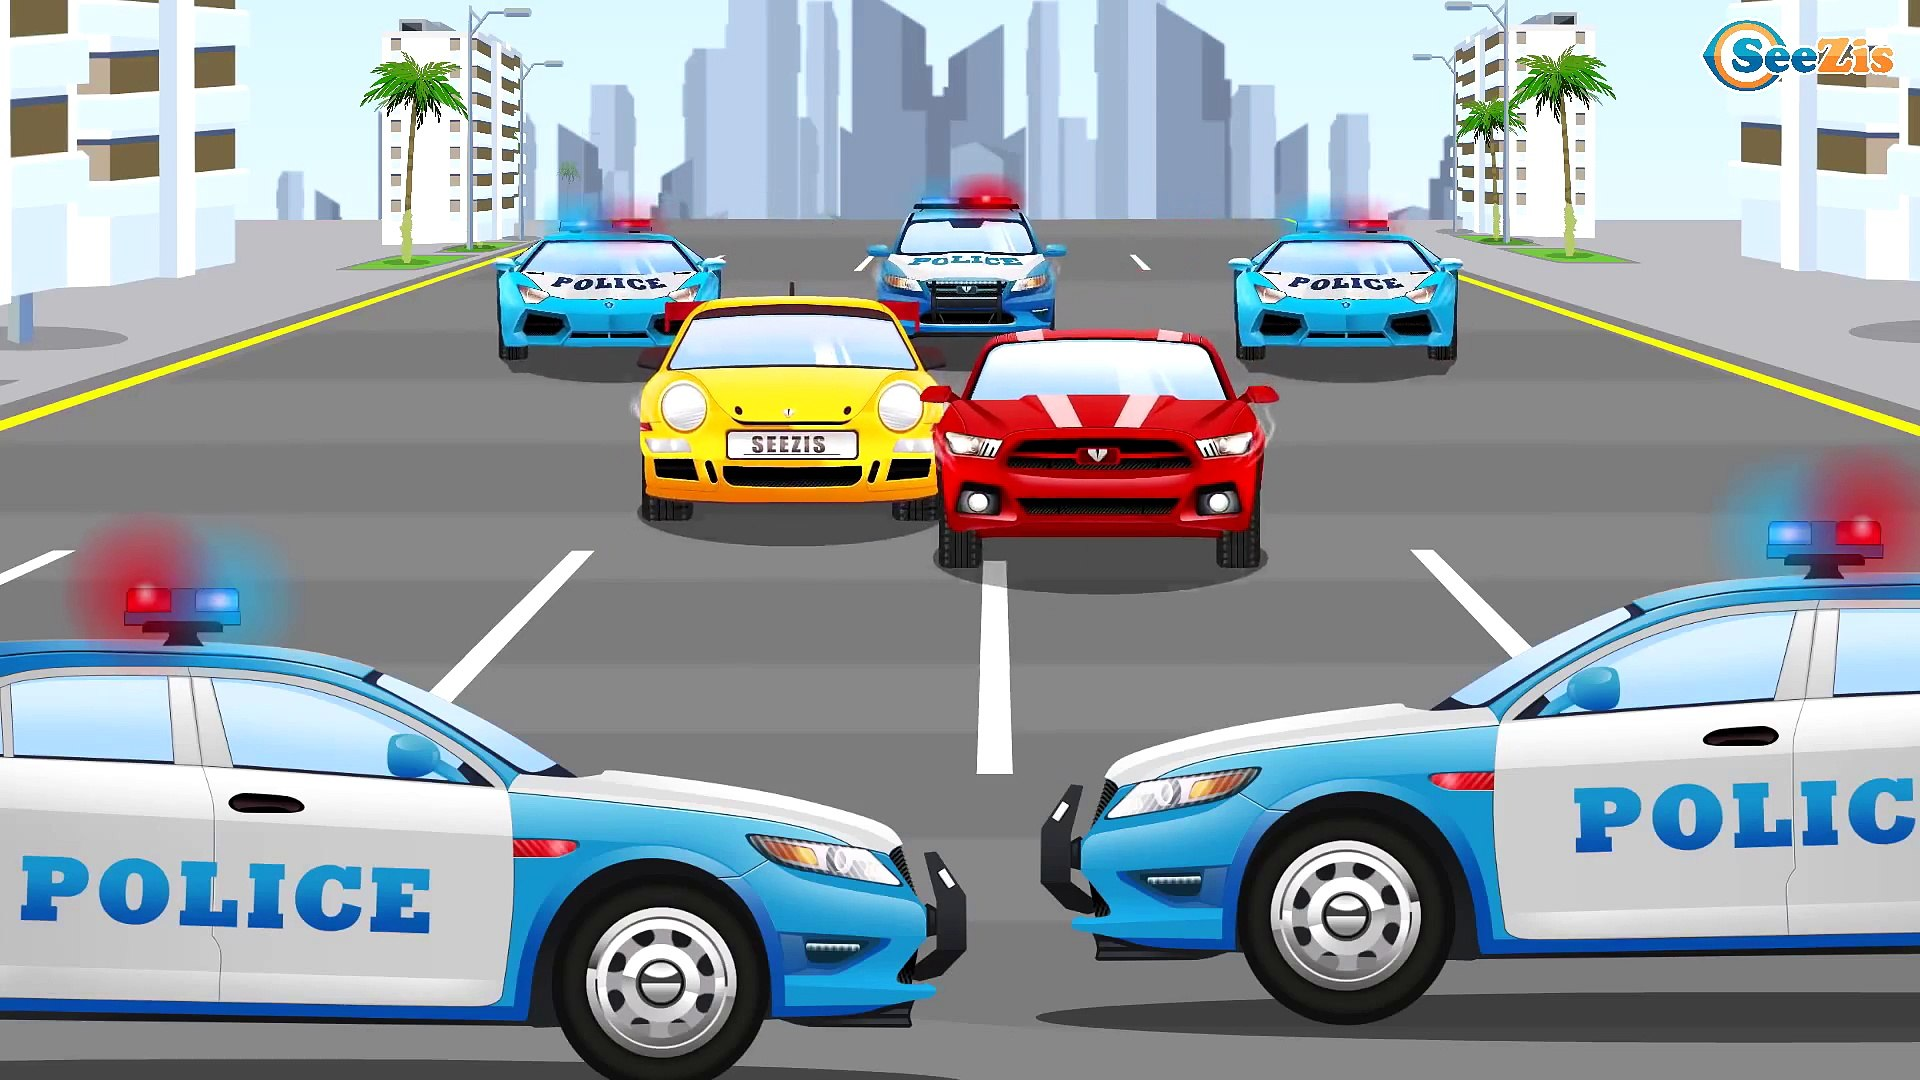 Cars Cartoon about Racing Cars & Sports Car Race with Police Car in the City | Cartoons for chil